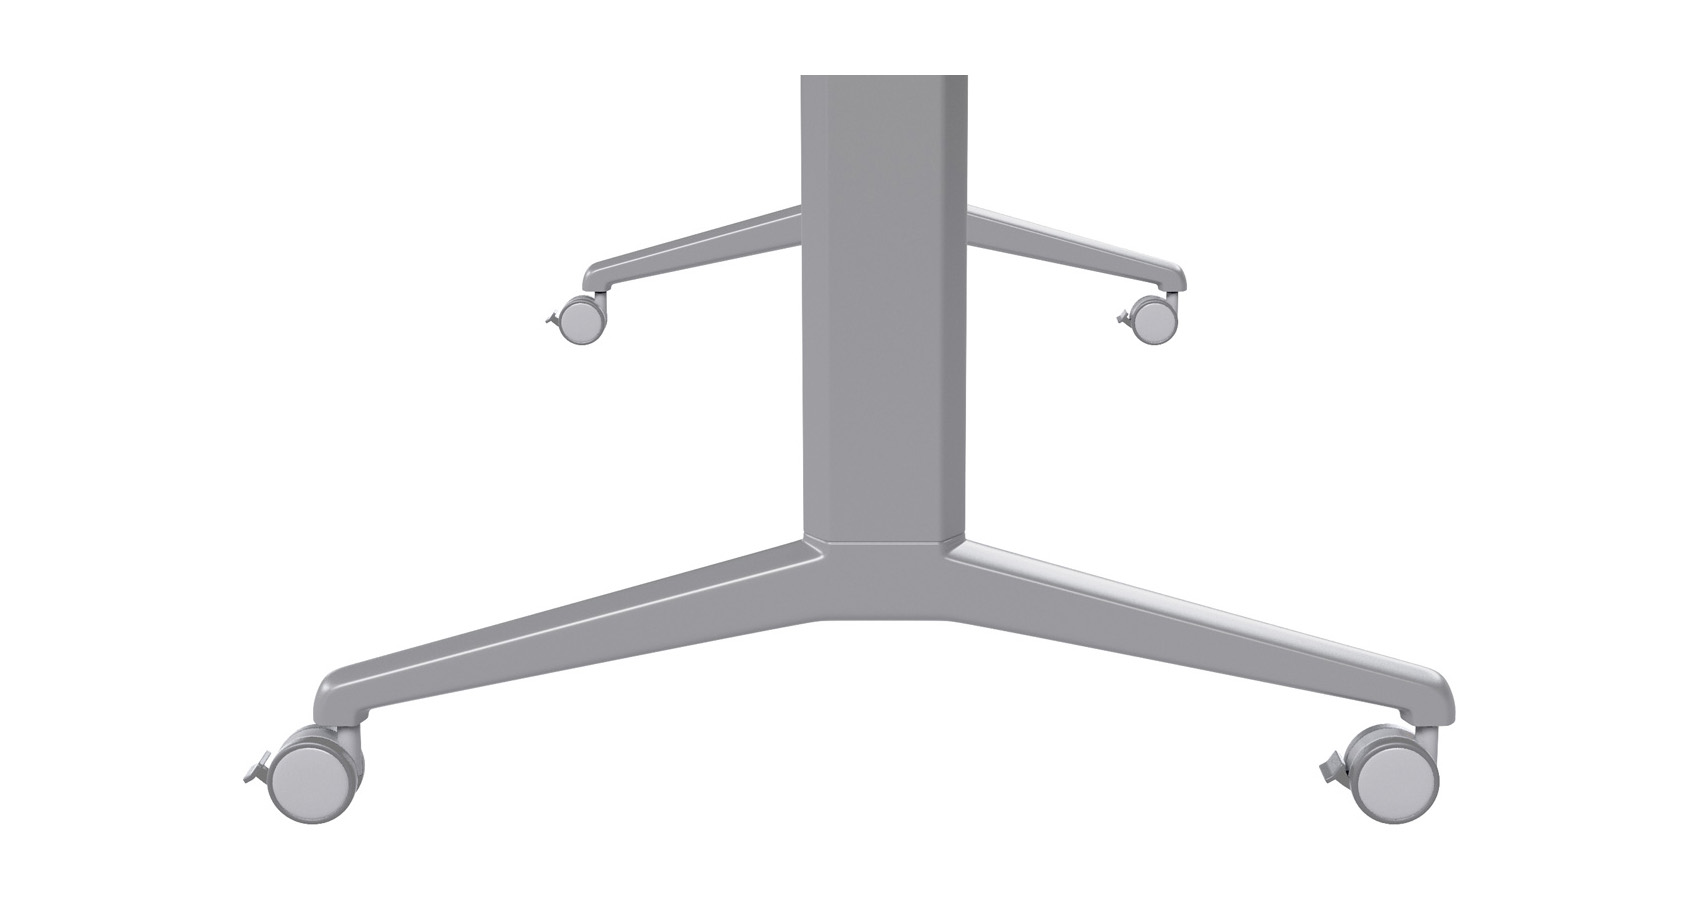 Flip Folding Table Leg Detail